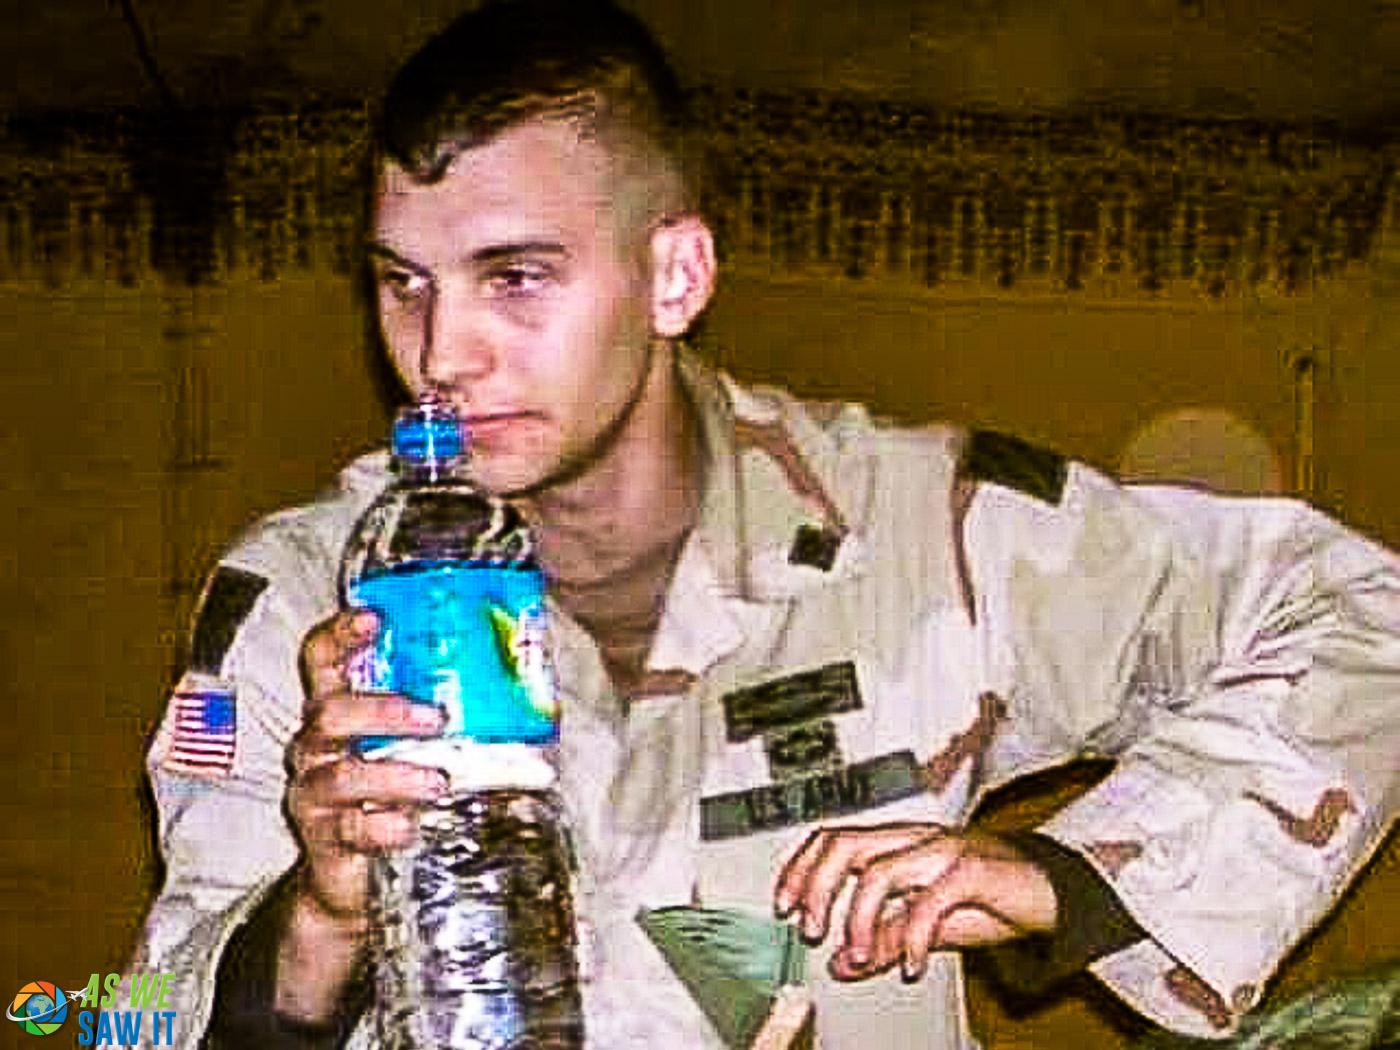 Jimmy serving in Iraq